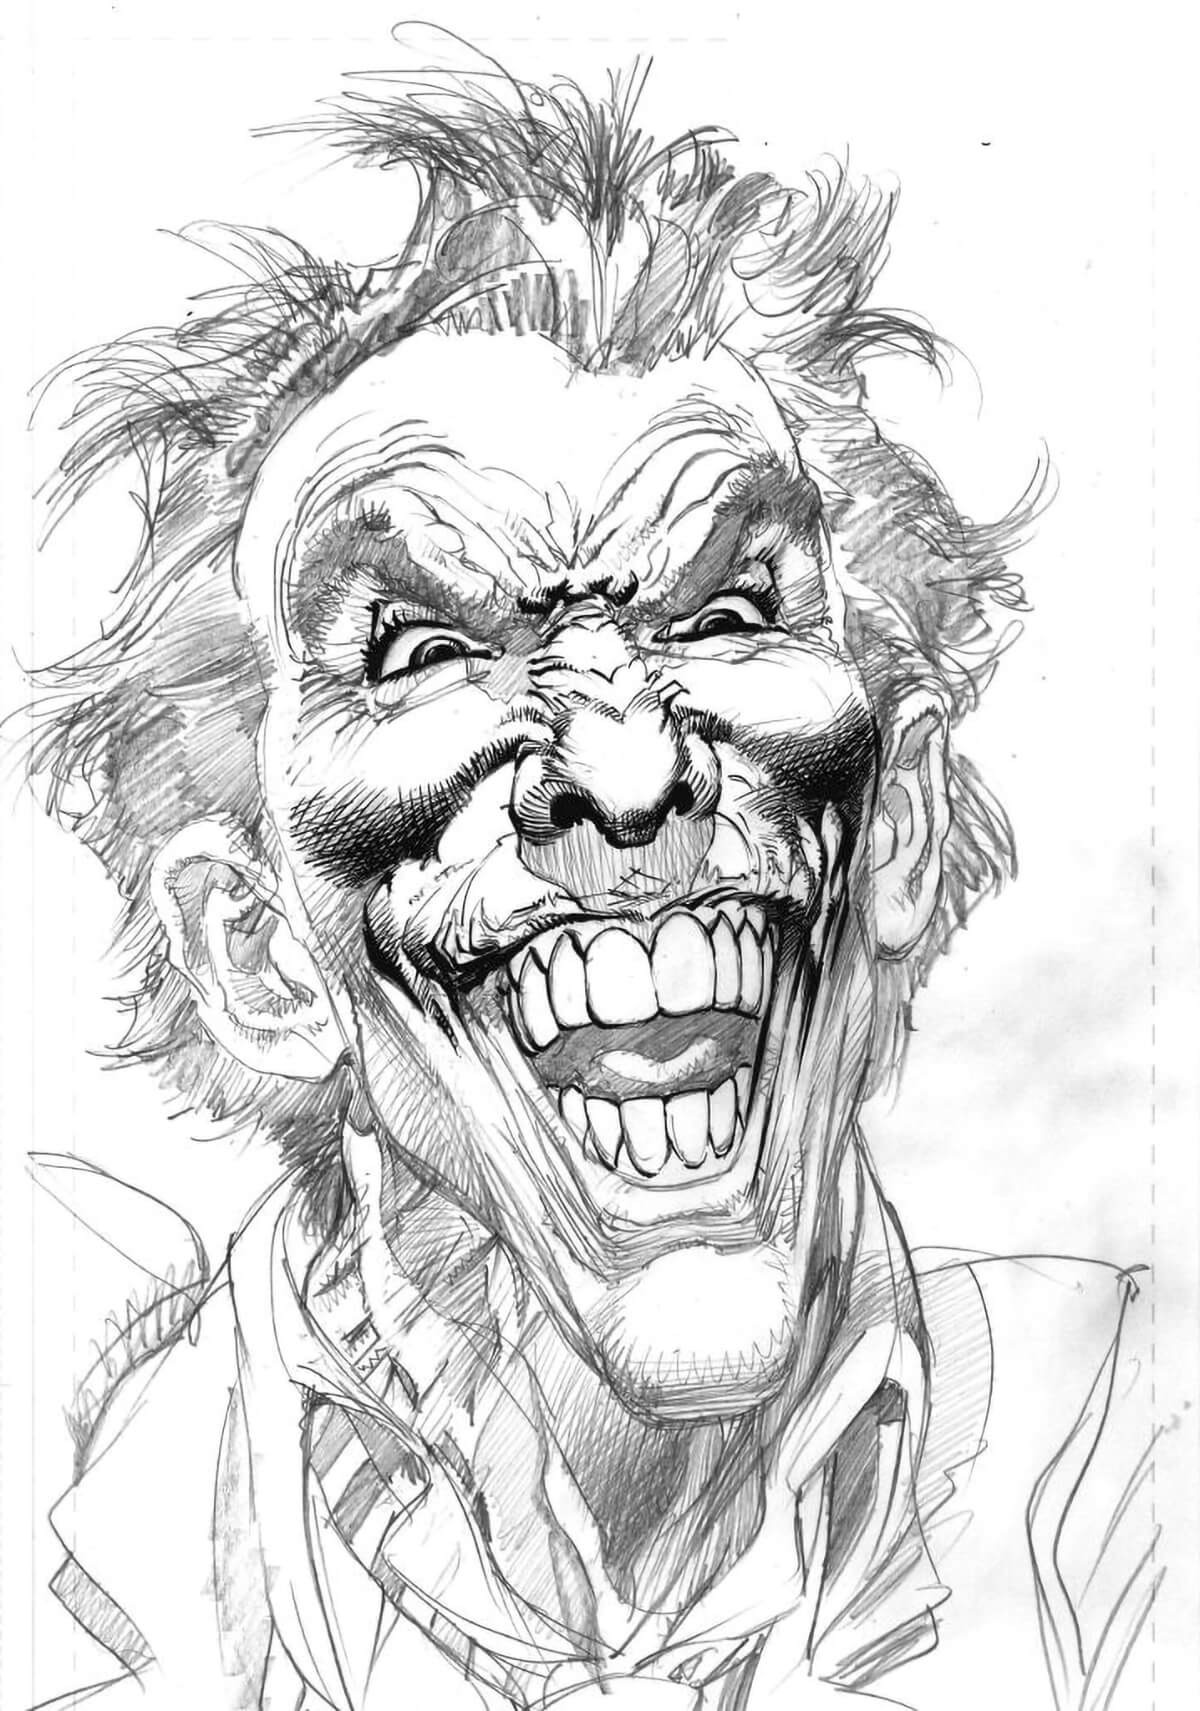 Joker pencils by Neal Adams